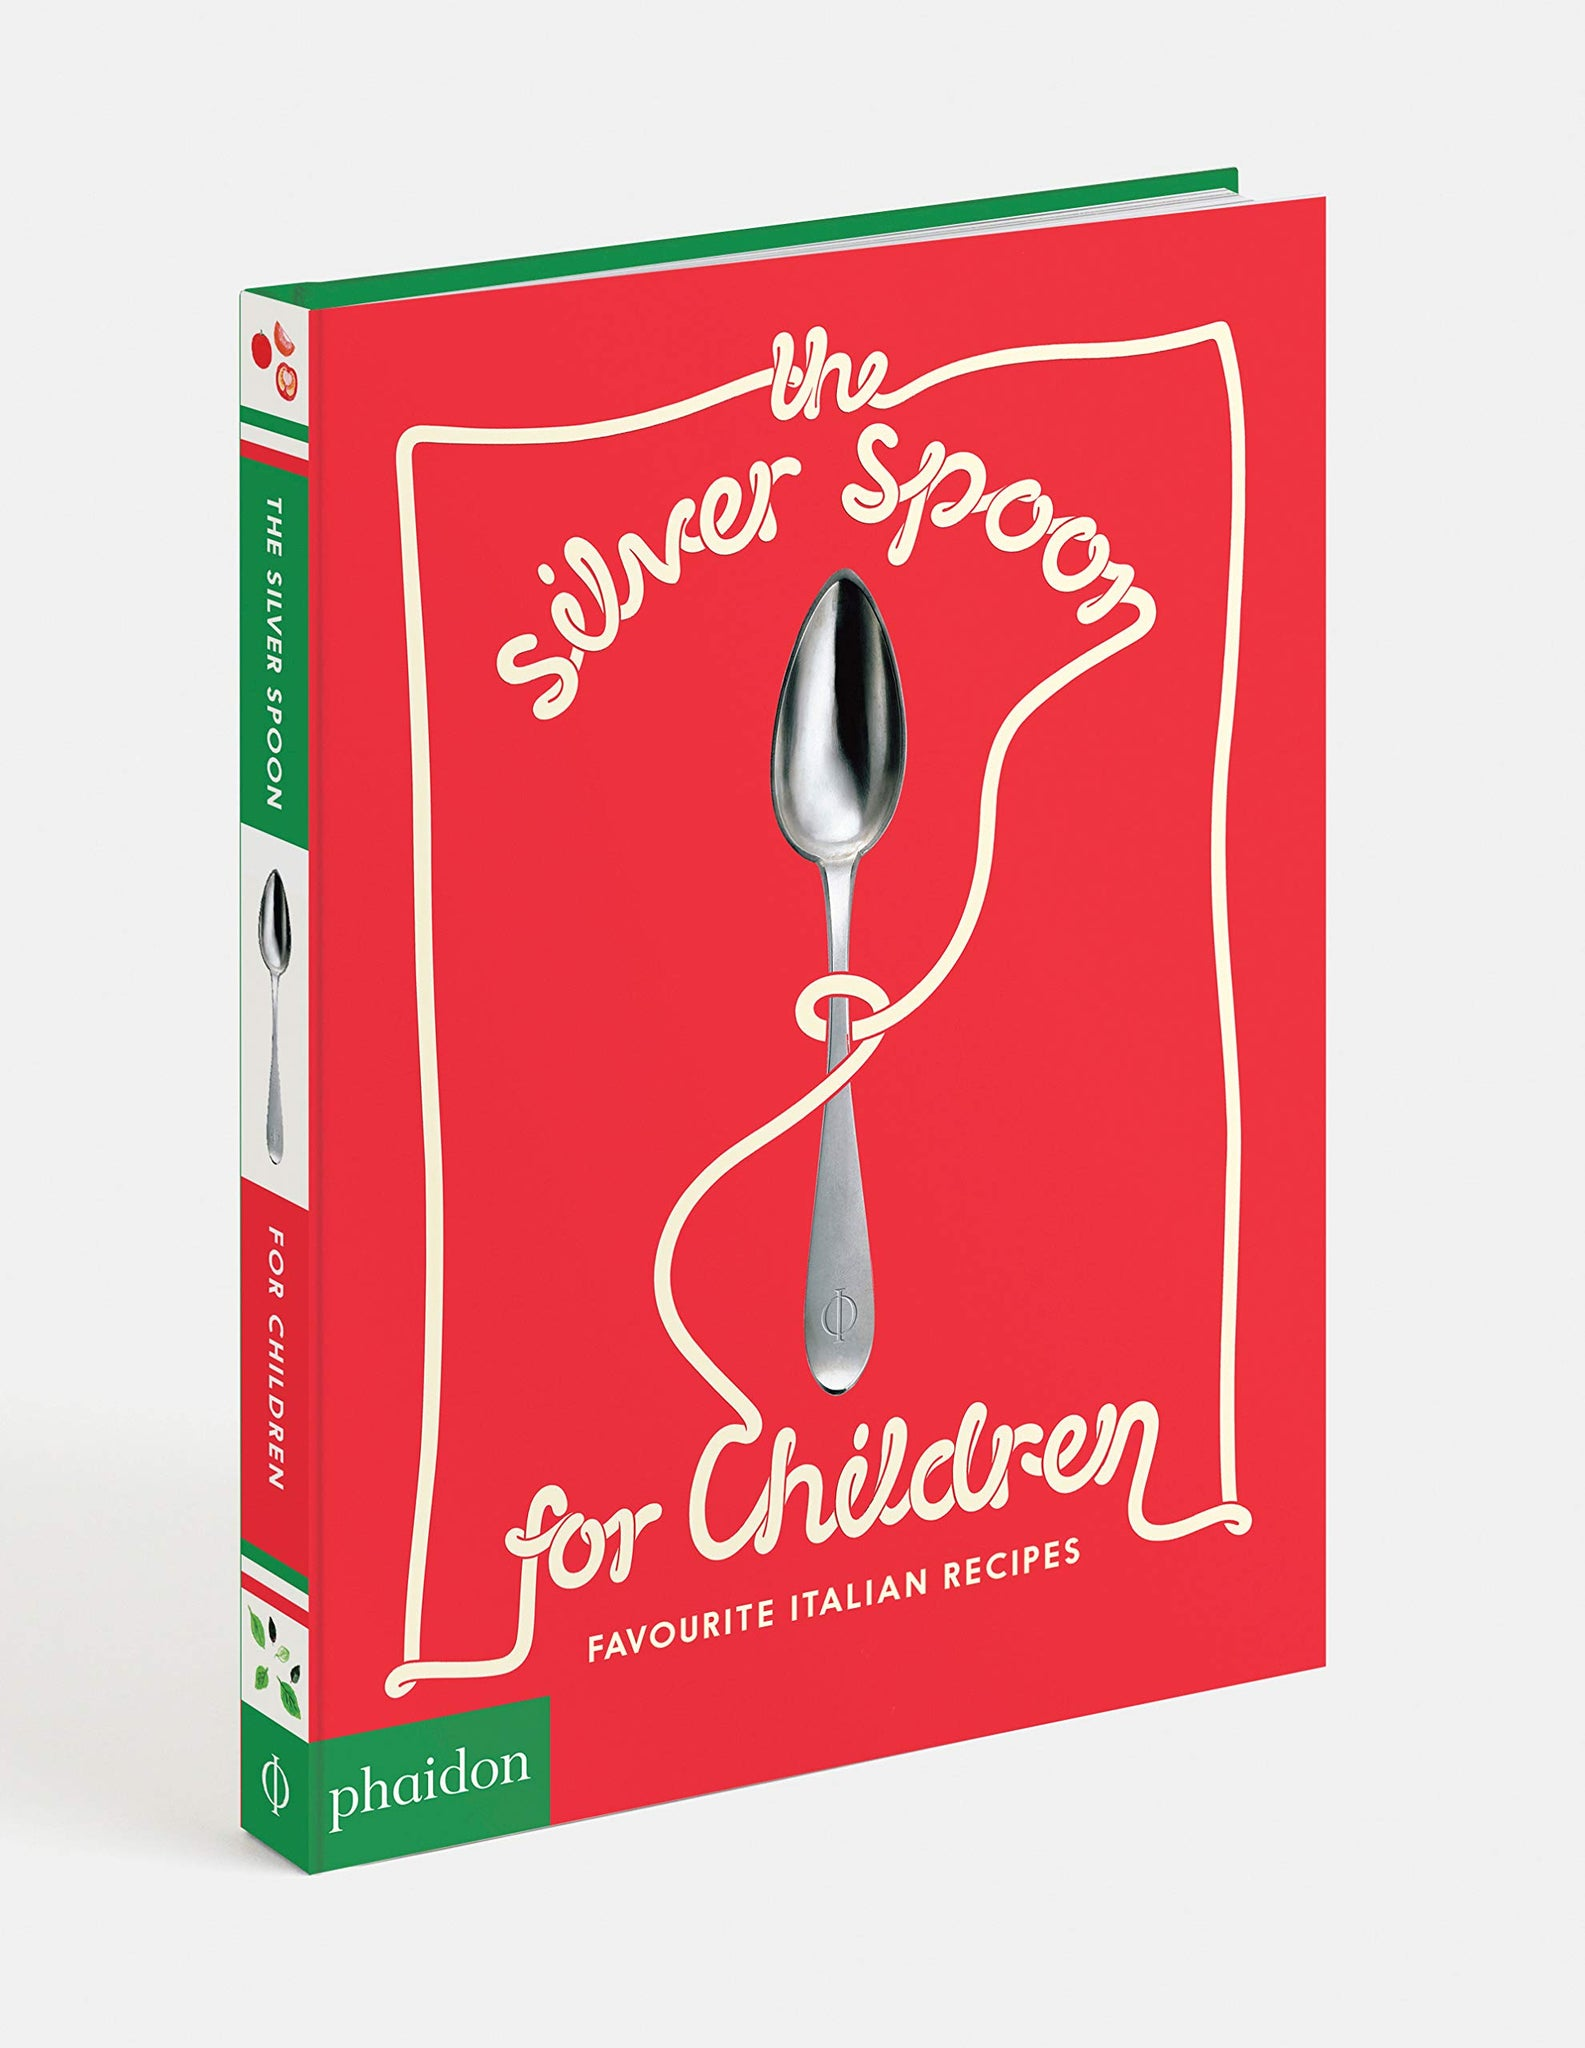 Silver Spoon for Children: New Edition